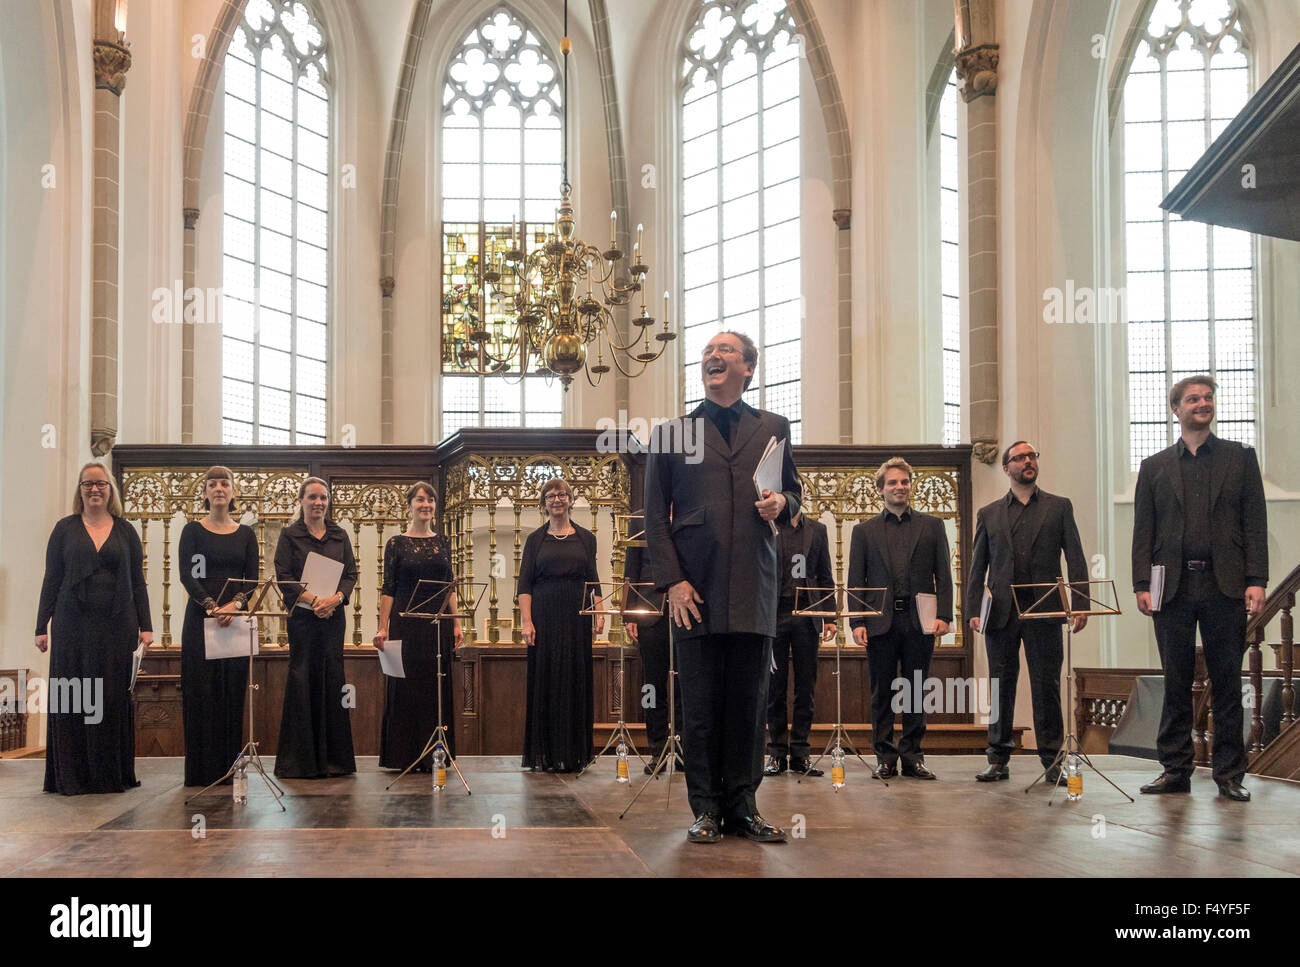 http://c7.alamy.com/comp/F4YF5F/the-tallis-scholars-with-peter-phillips-on-stage-in-a-church-F4YF5F.jpg